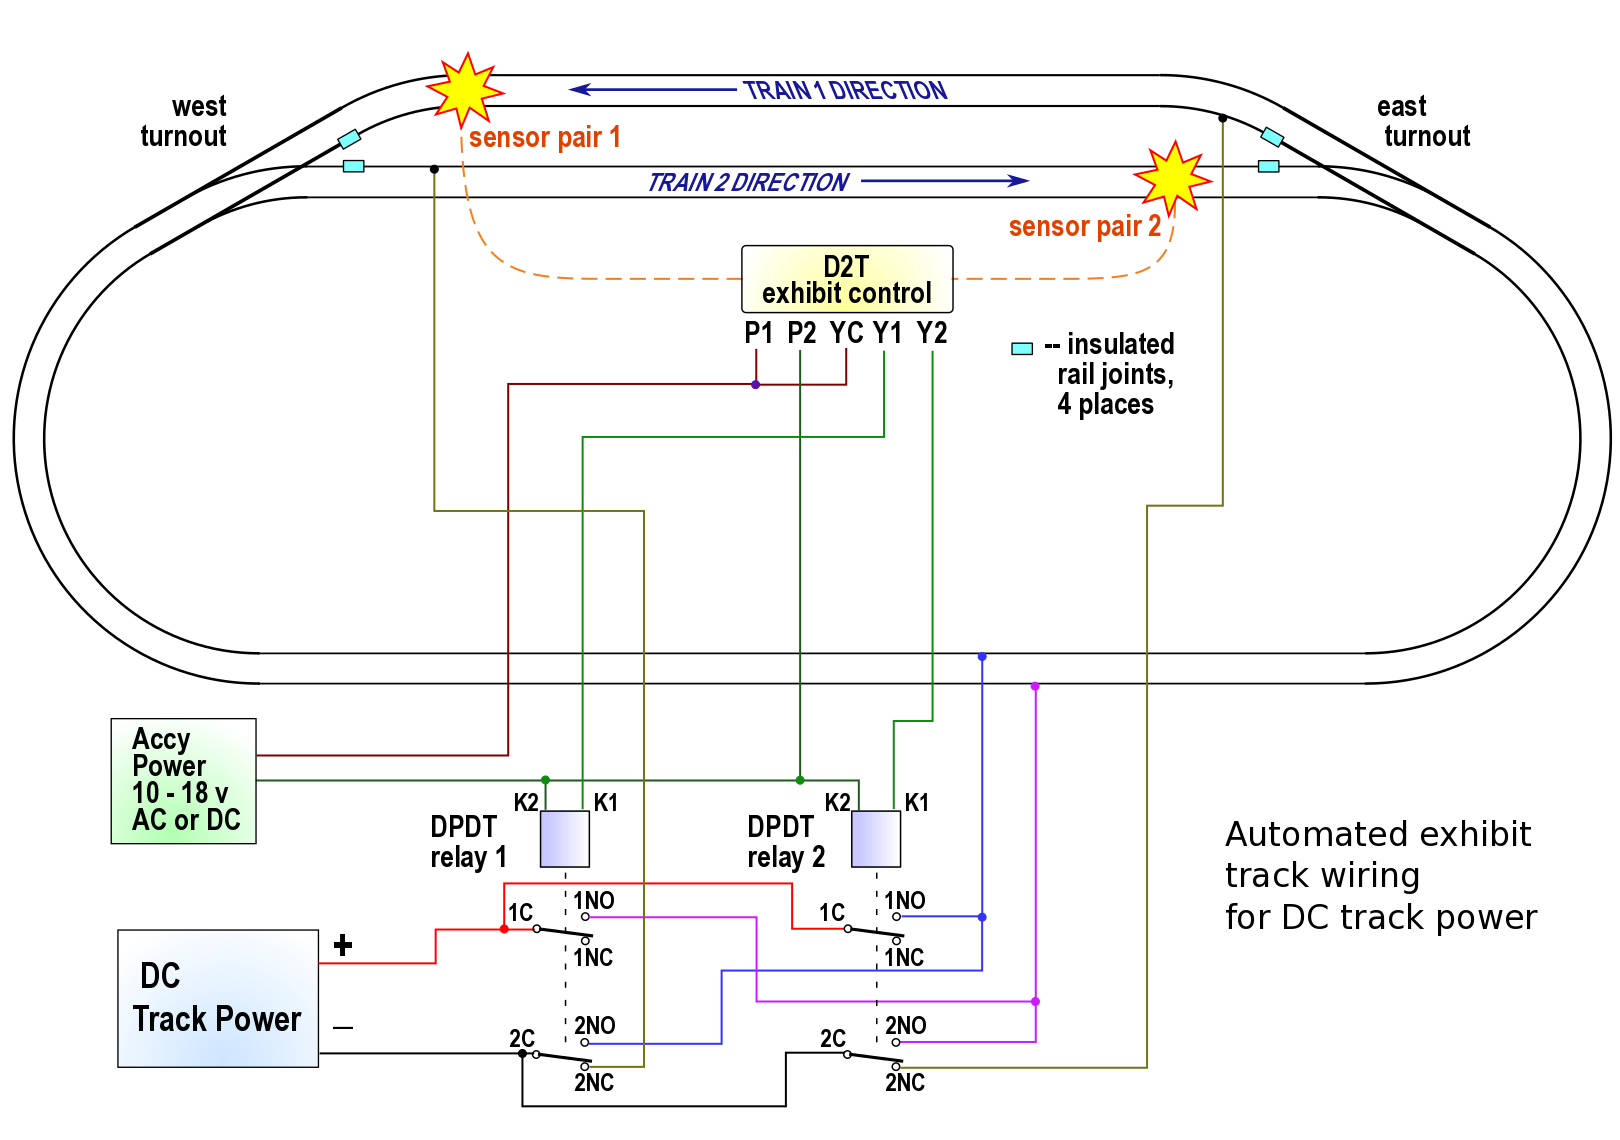 loop wiring diagram for dc model railroad model trains train model model railway dc wiring diagrams [ 1620 x 1140 Pixel ]